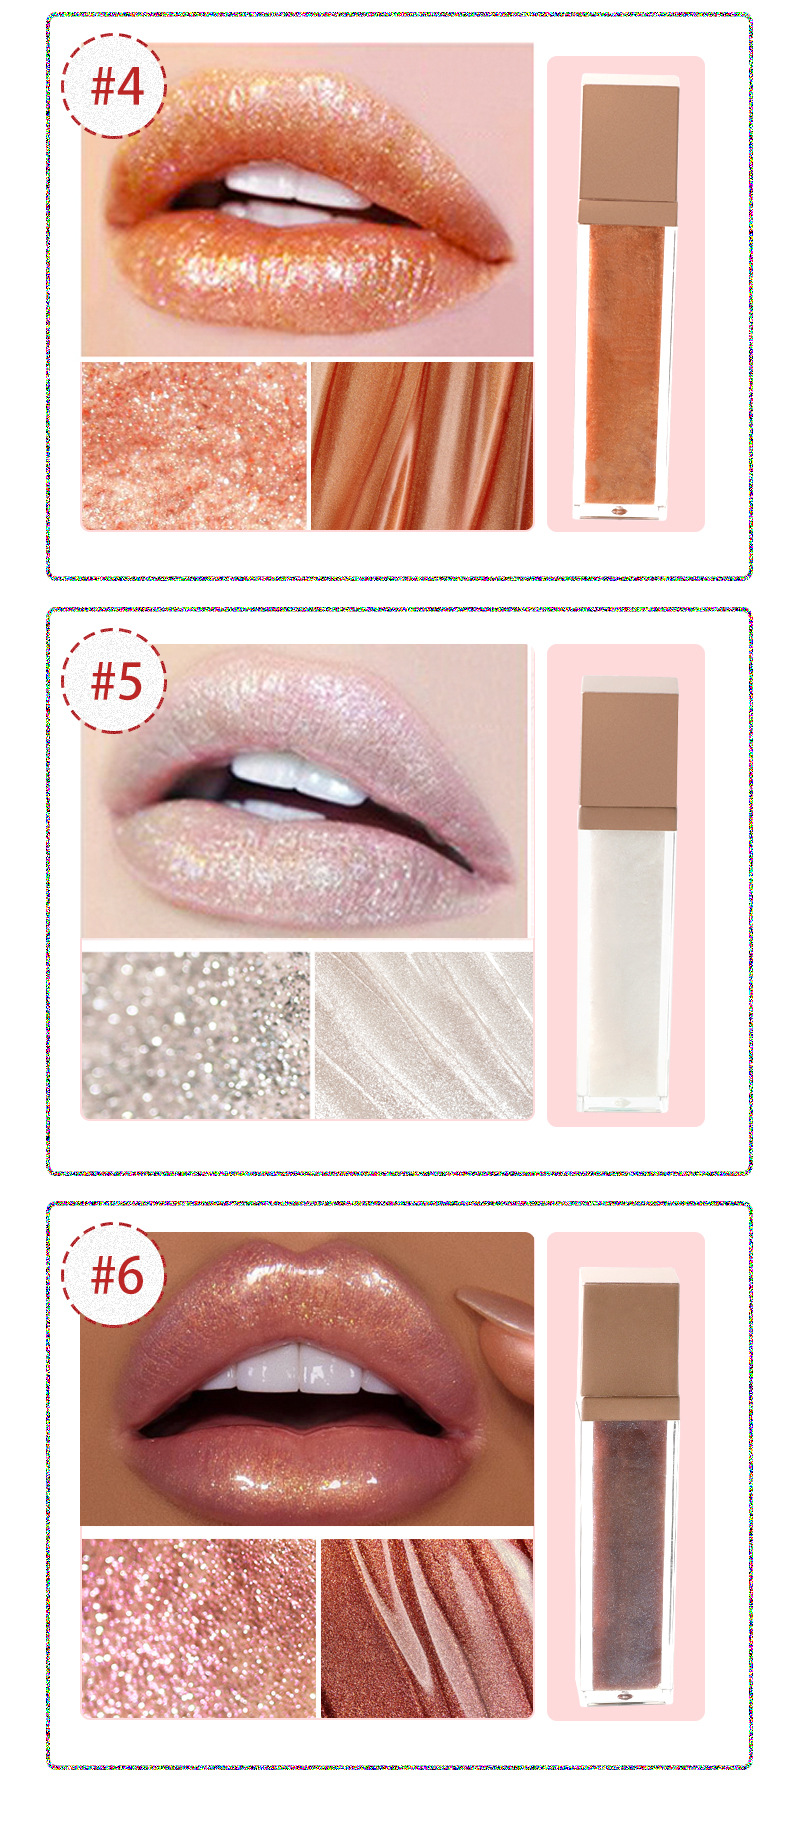 pearlescent lip gloss lip swatches